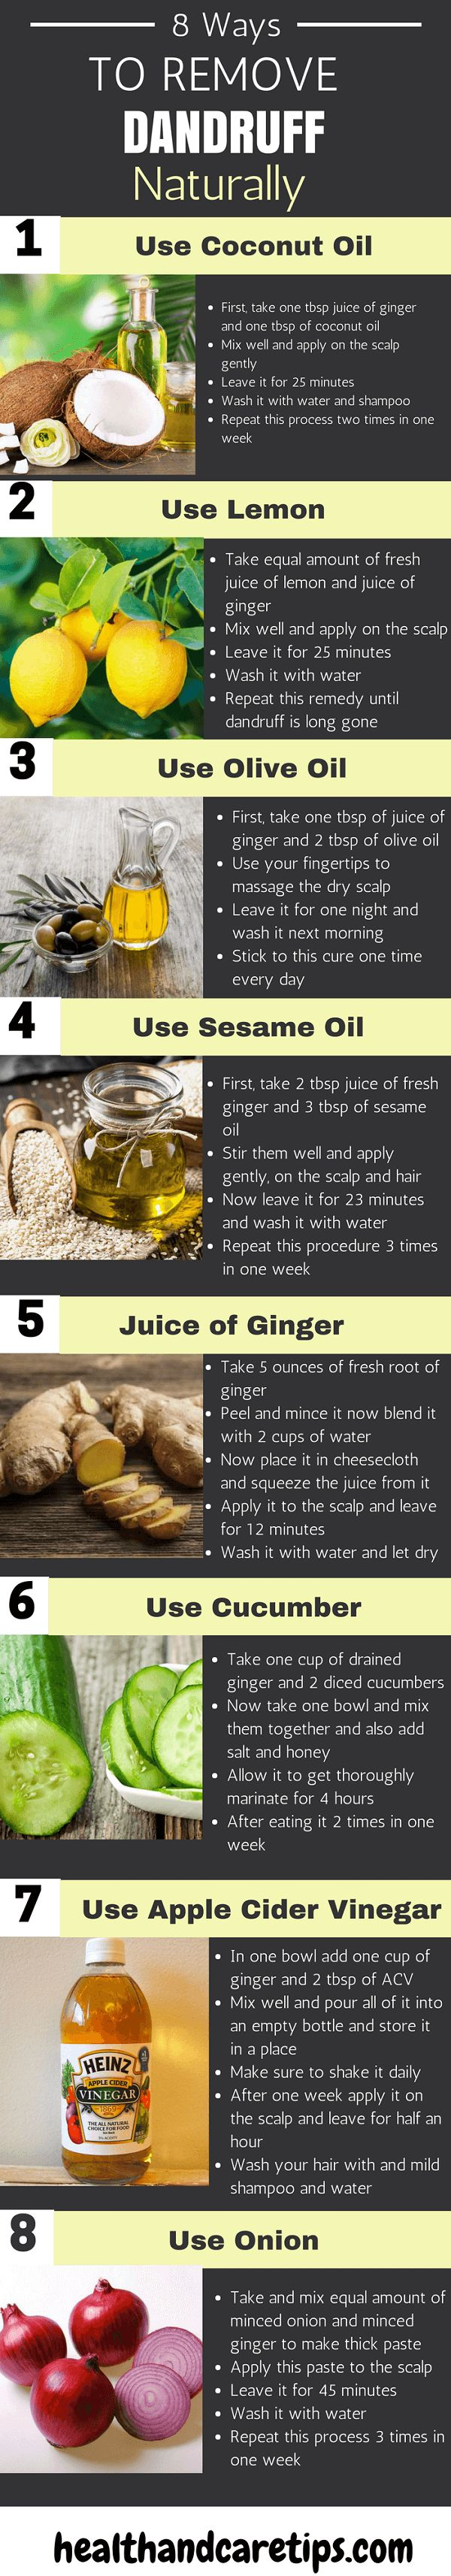 How You Can Use GINGER For Dandruff To Get Rid Of Dandruff Fast